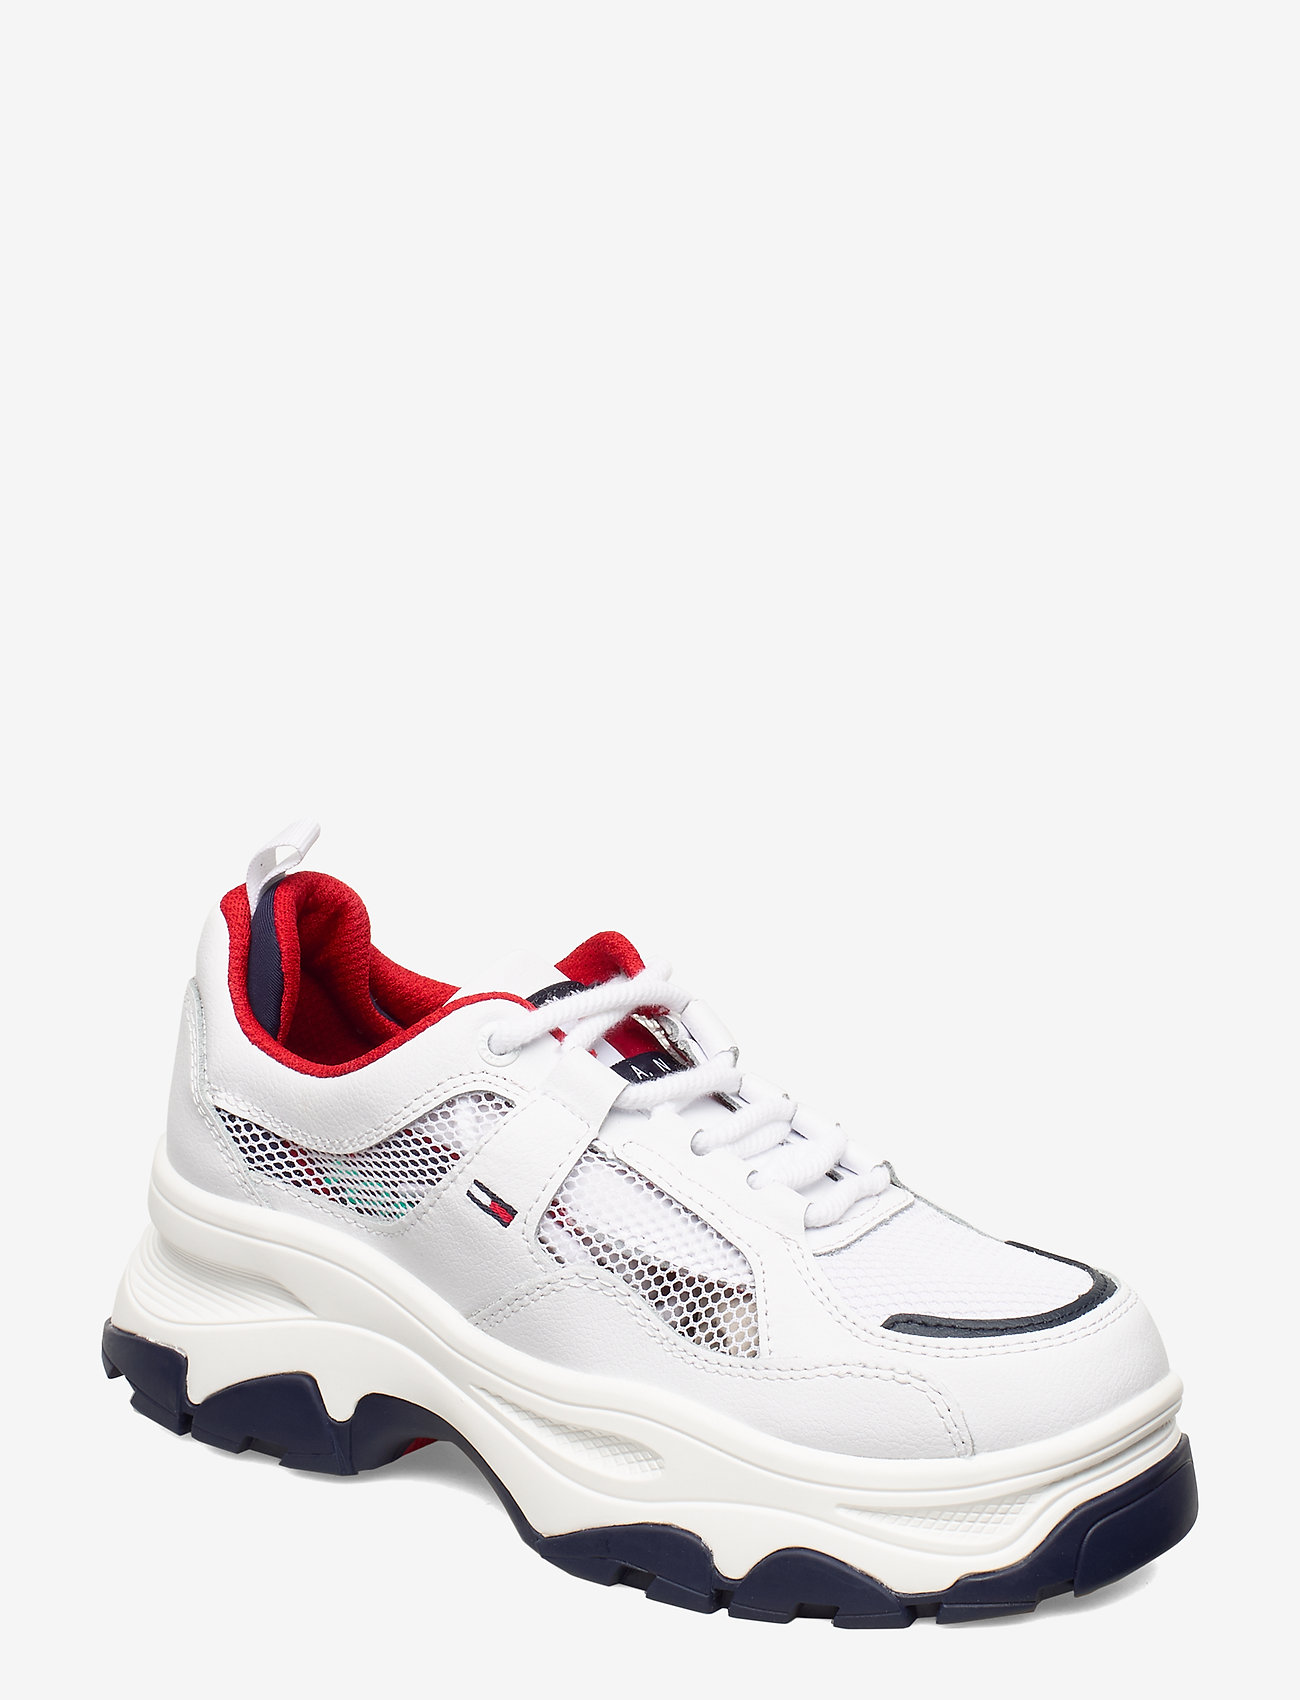 Tommy Hilfiger - RECYCLED MESH FLATFORM SHOE - chunky sneakers - twillight navy - 0